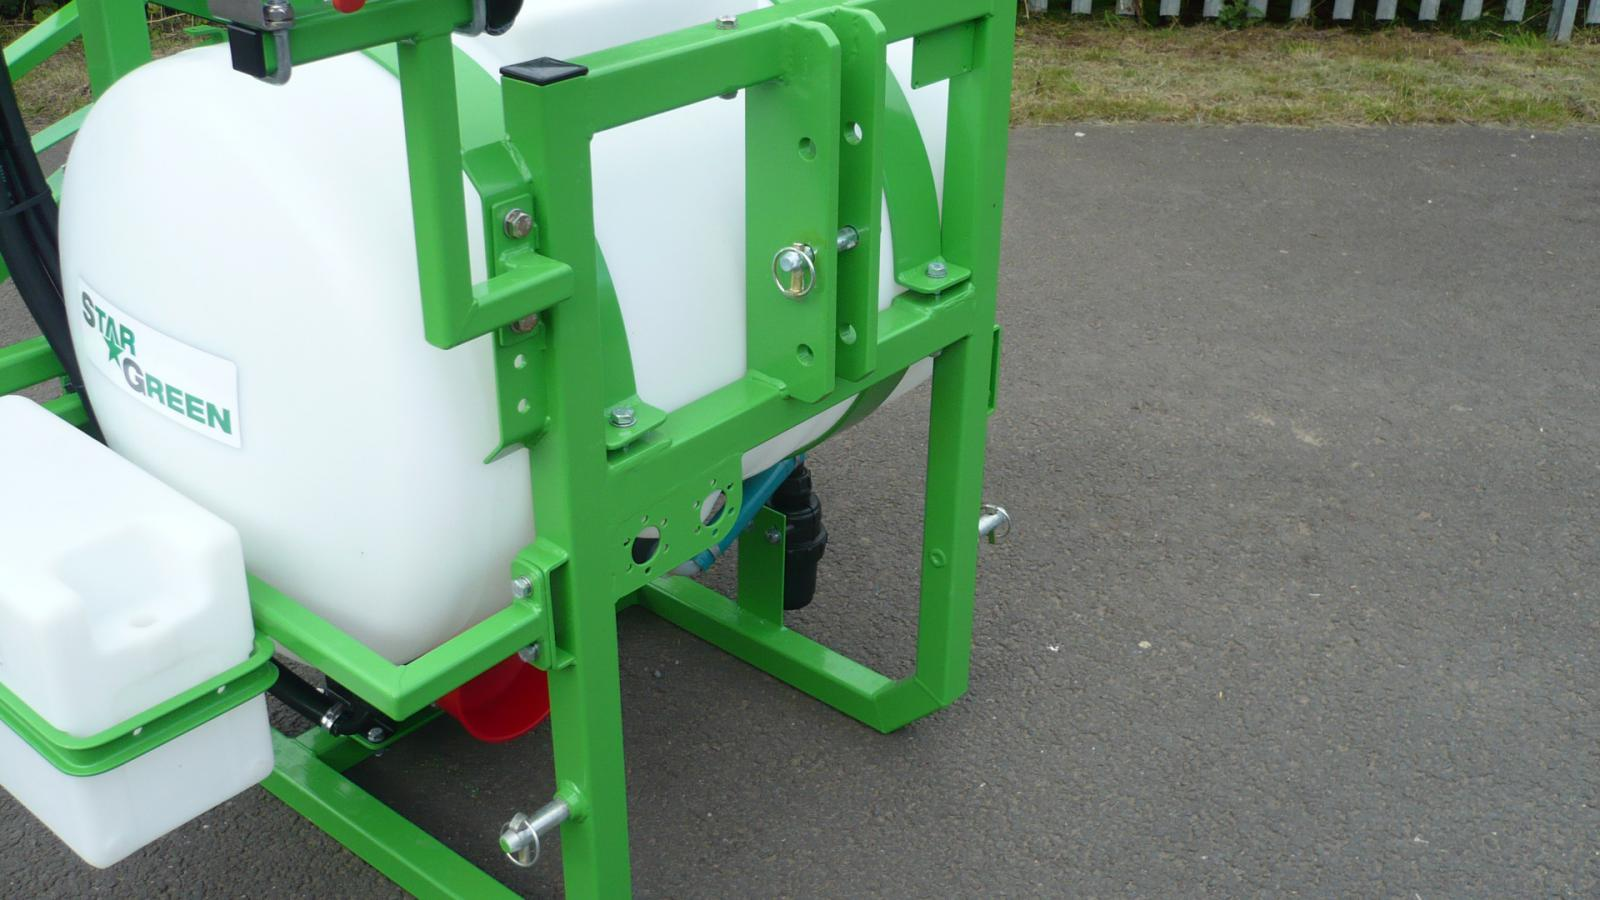 Three-point linkage to attach the STARGREEN 200 Litre Tractor Mounted Amenity Sprayer to a tractor unit